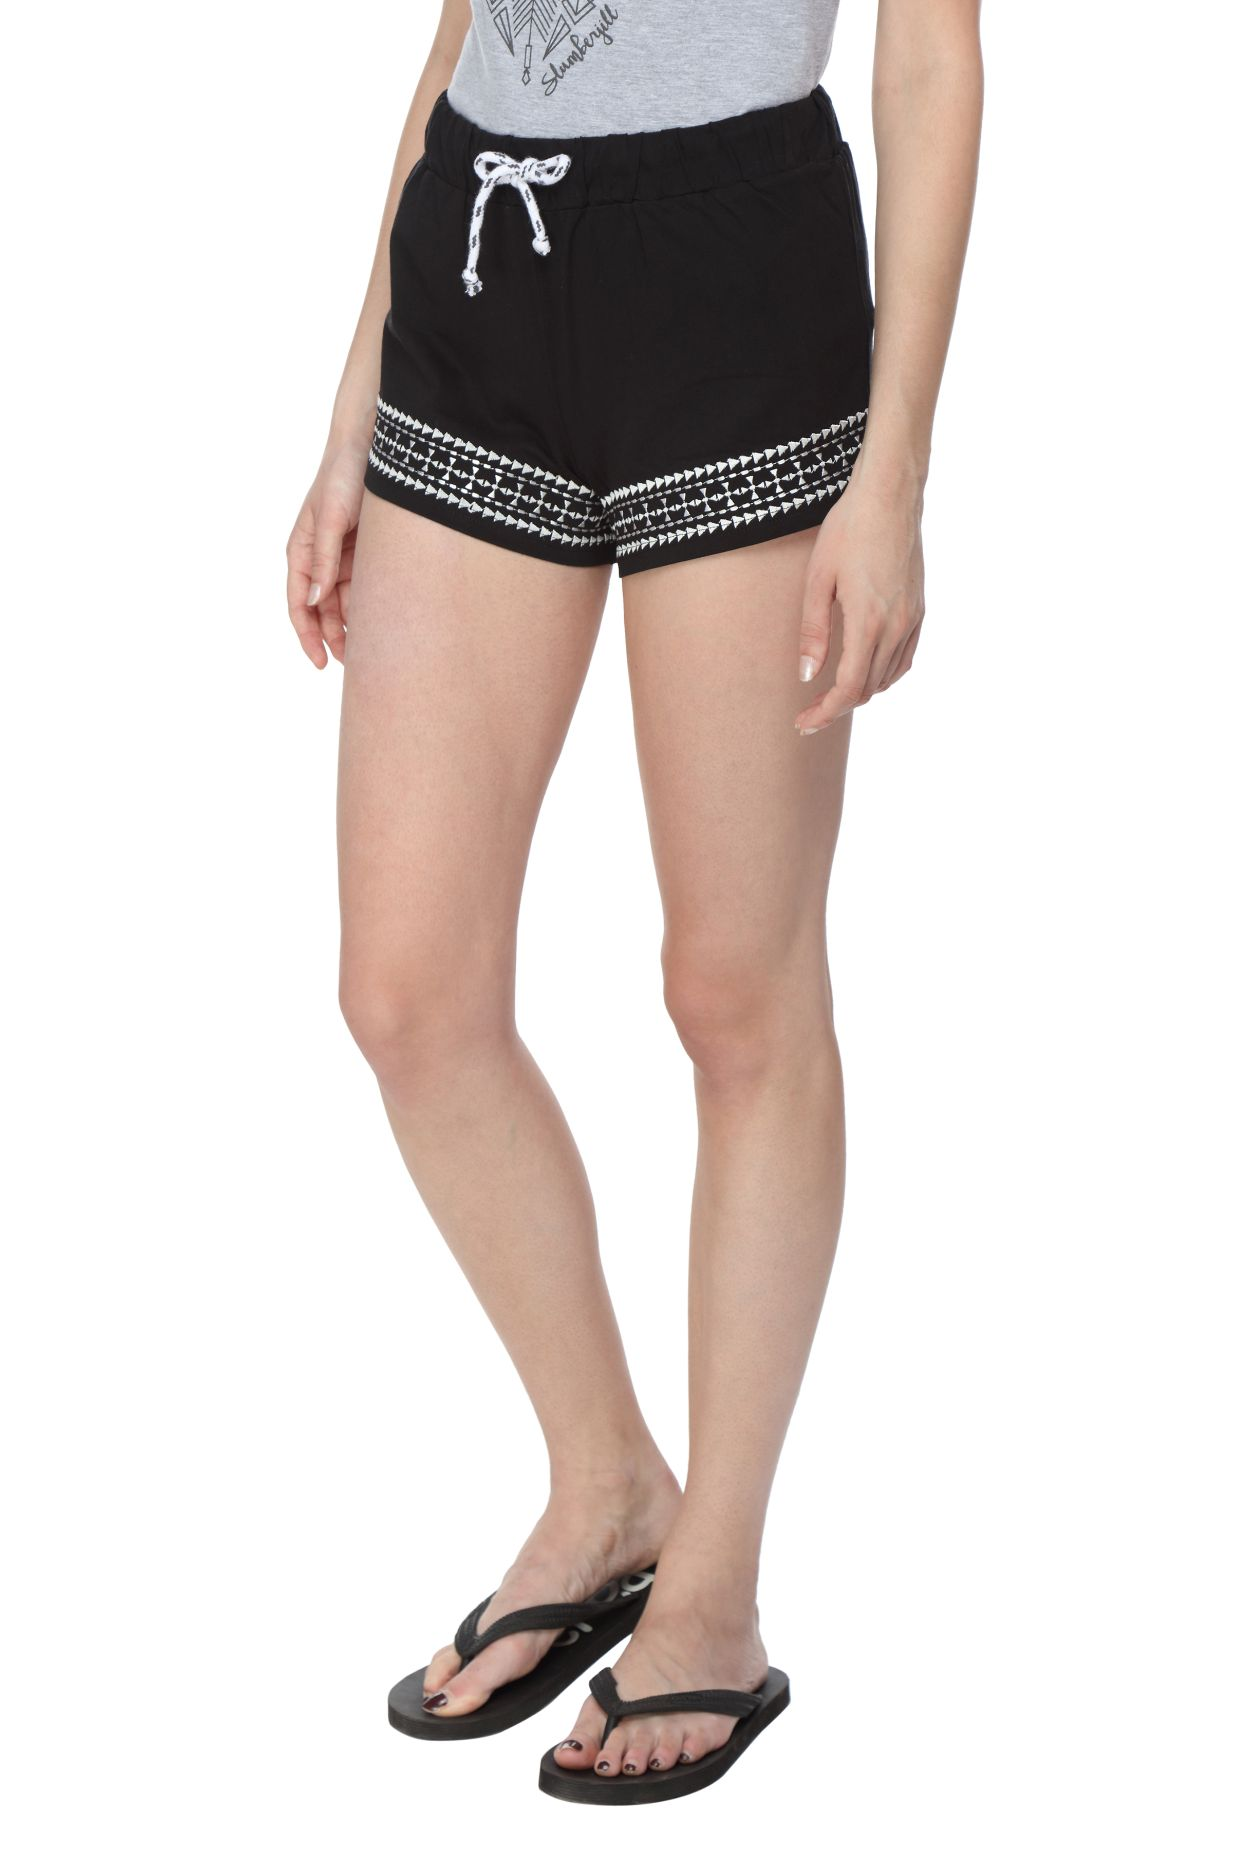 Slumber Jill Embroidered Women Black Night Shorts